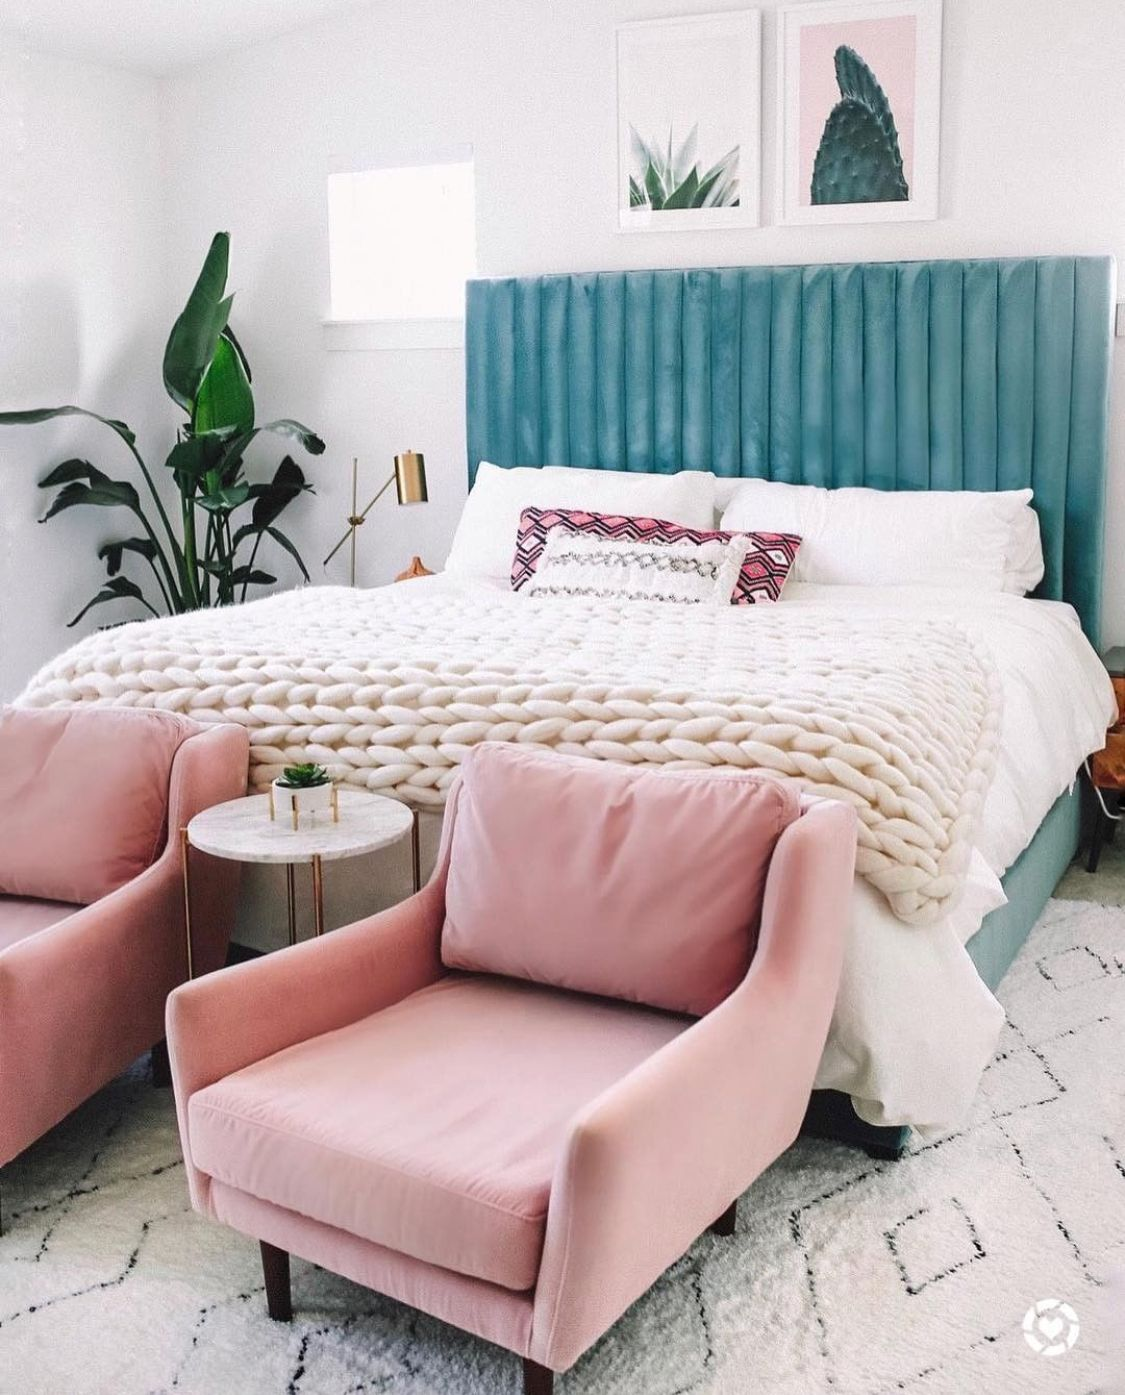 Boho Chic Style Bedroom Modern Bohemian Luxe Home Decor Pastels